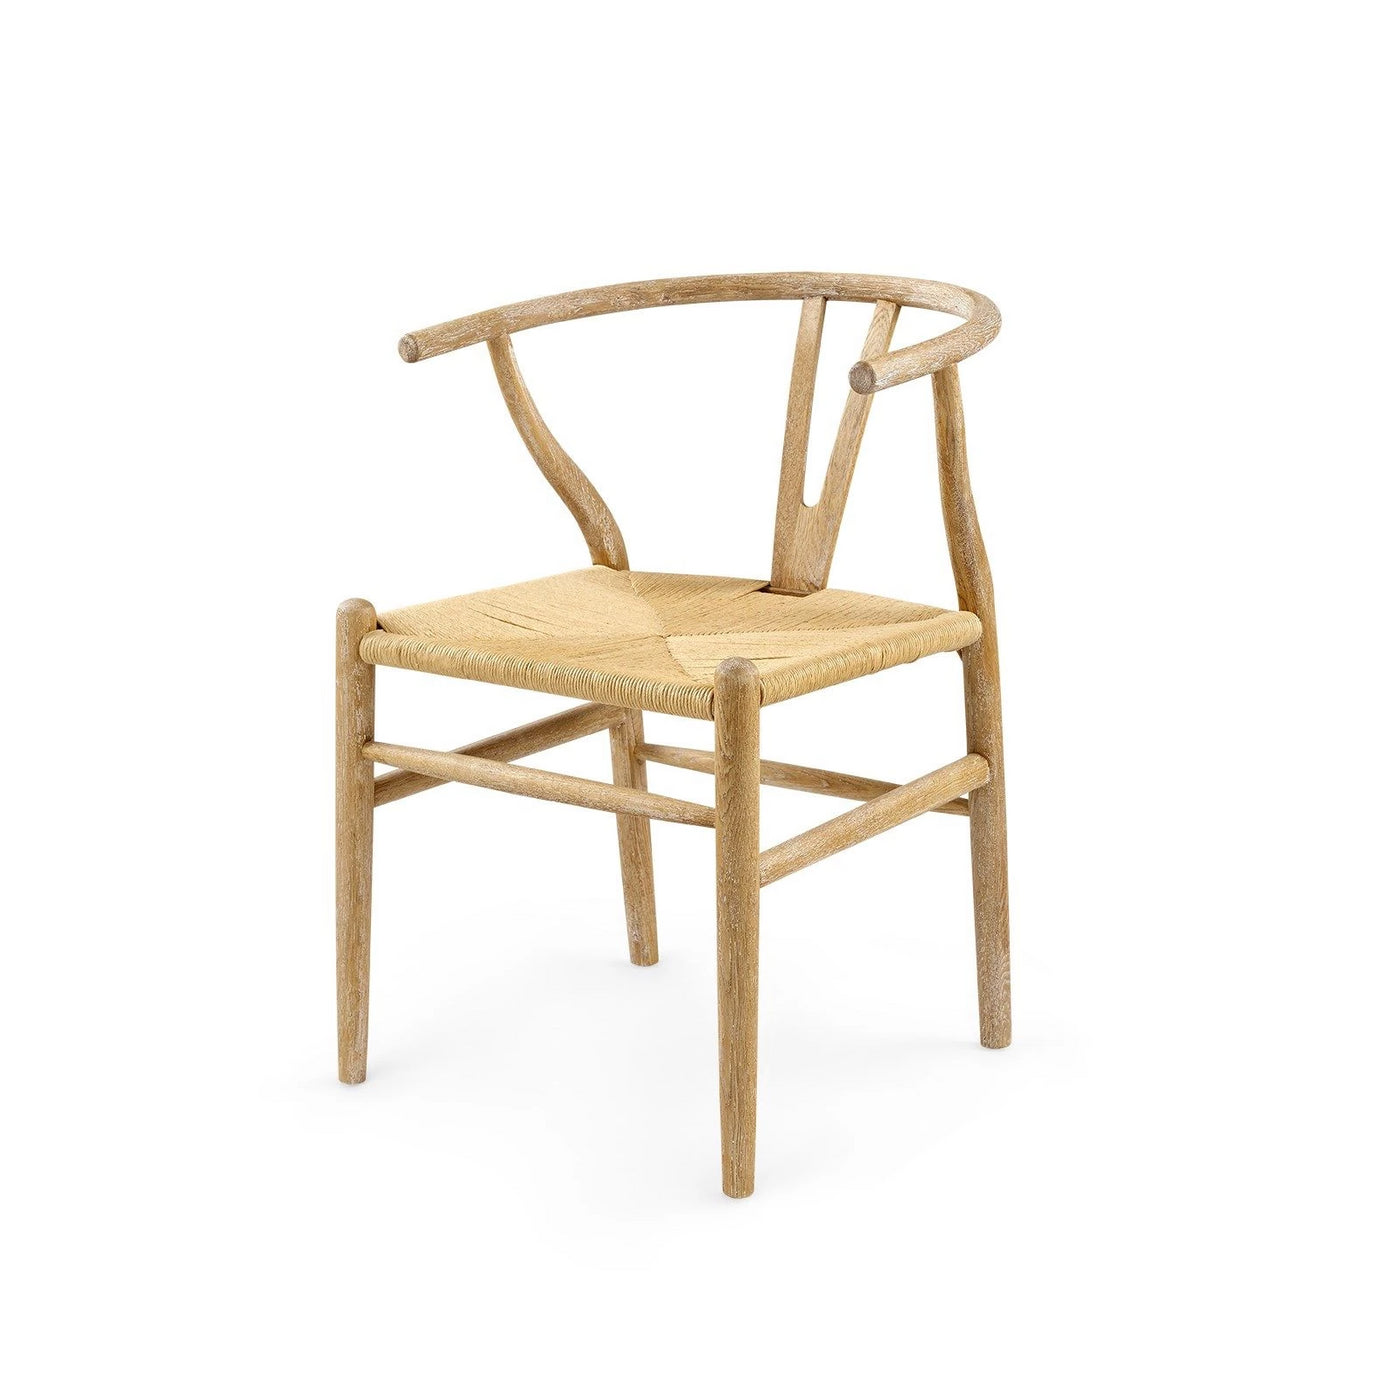 Bungalow 5 Oslo Armchair Natural OSL-555-98